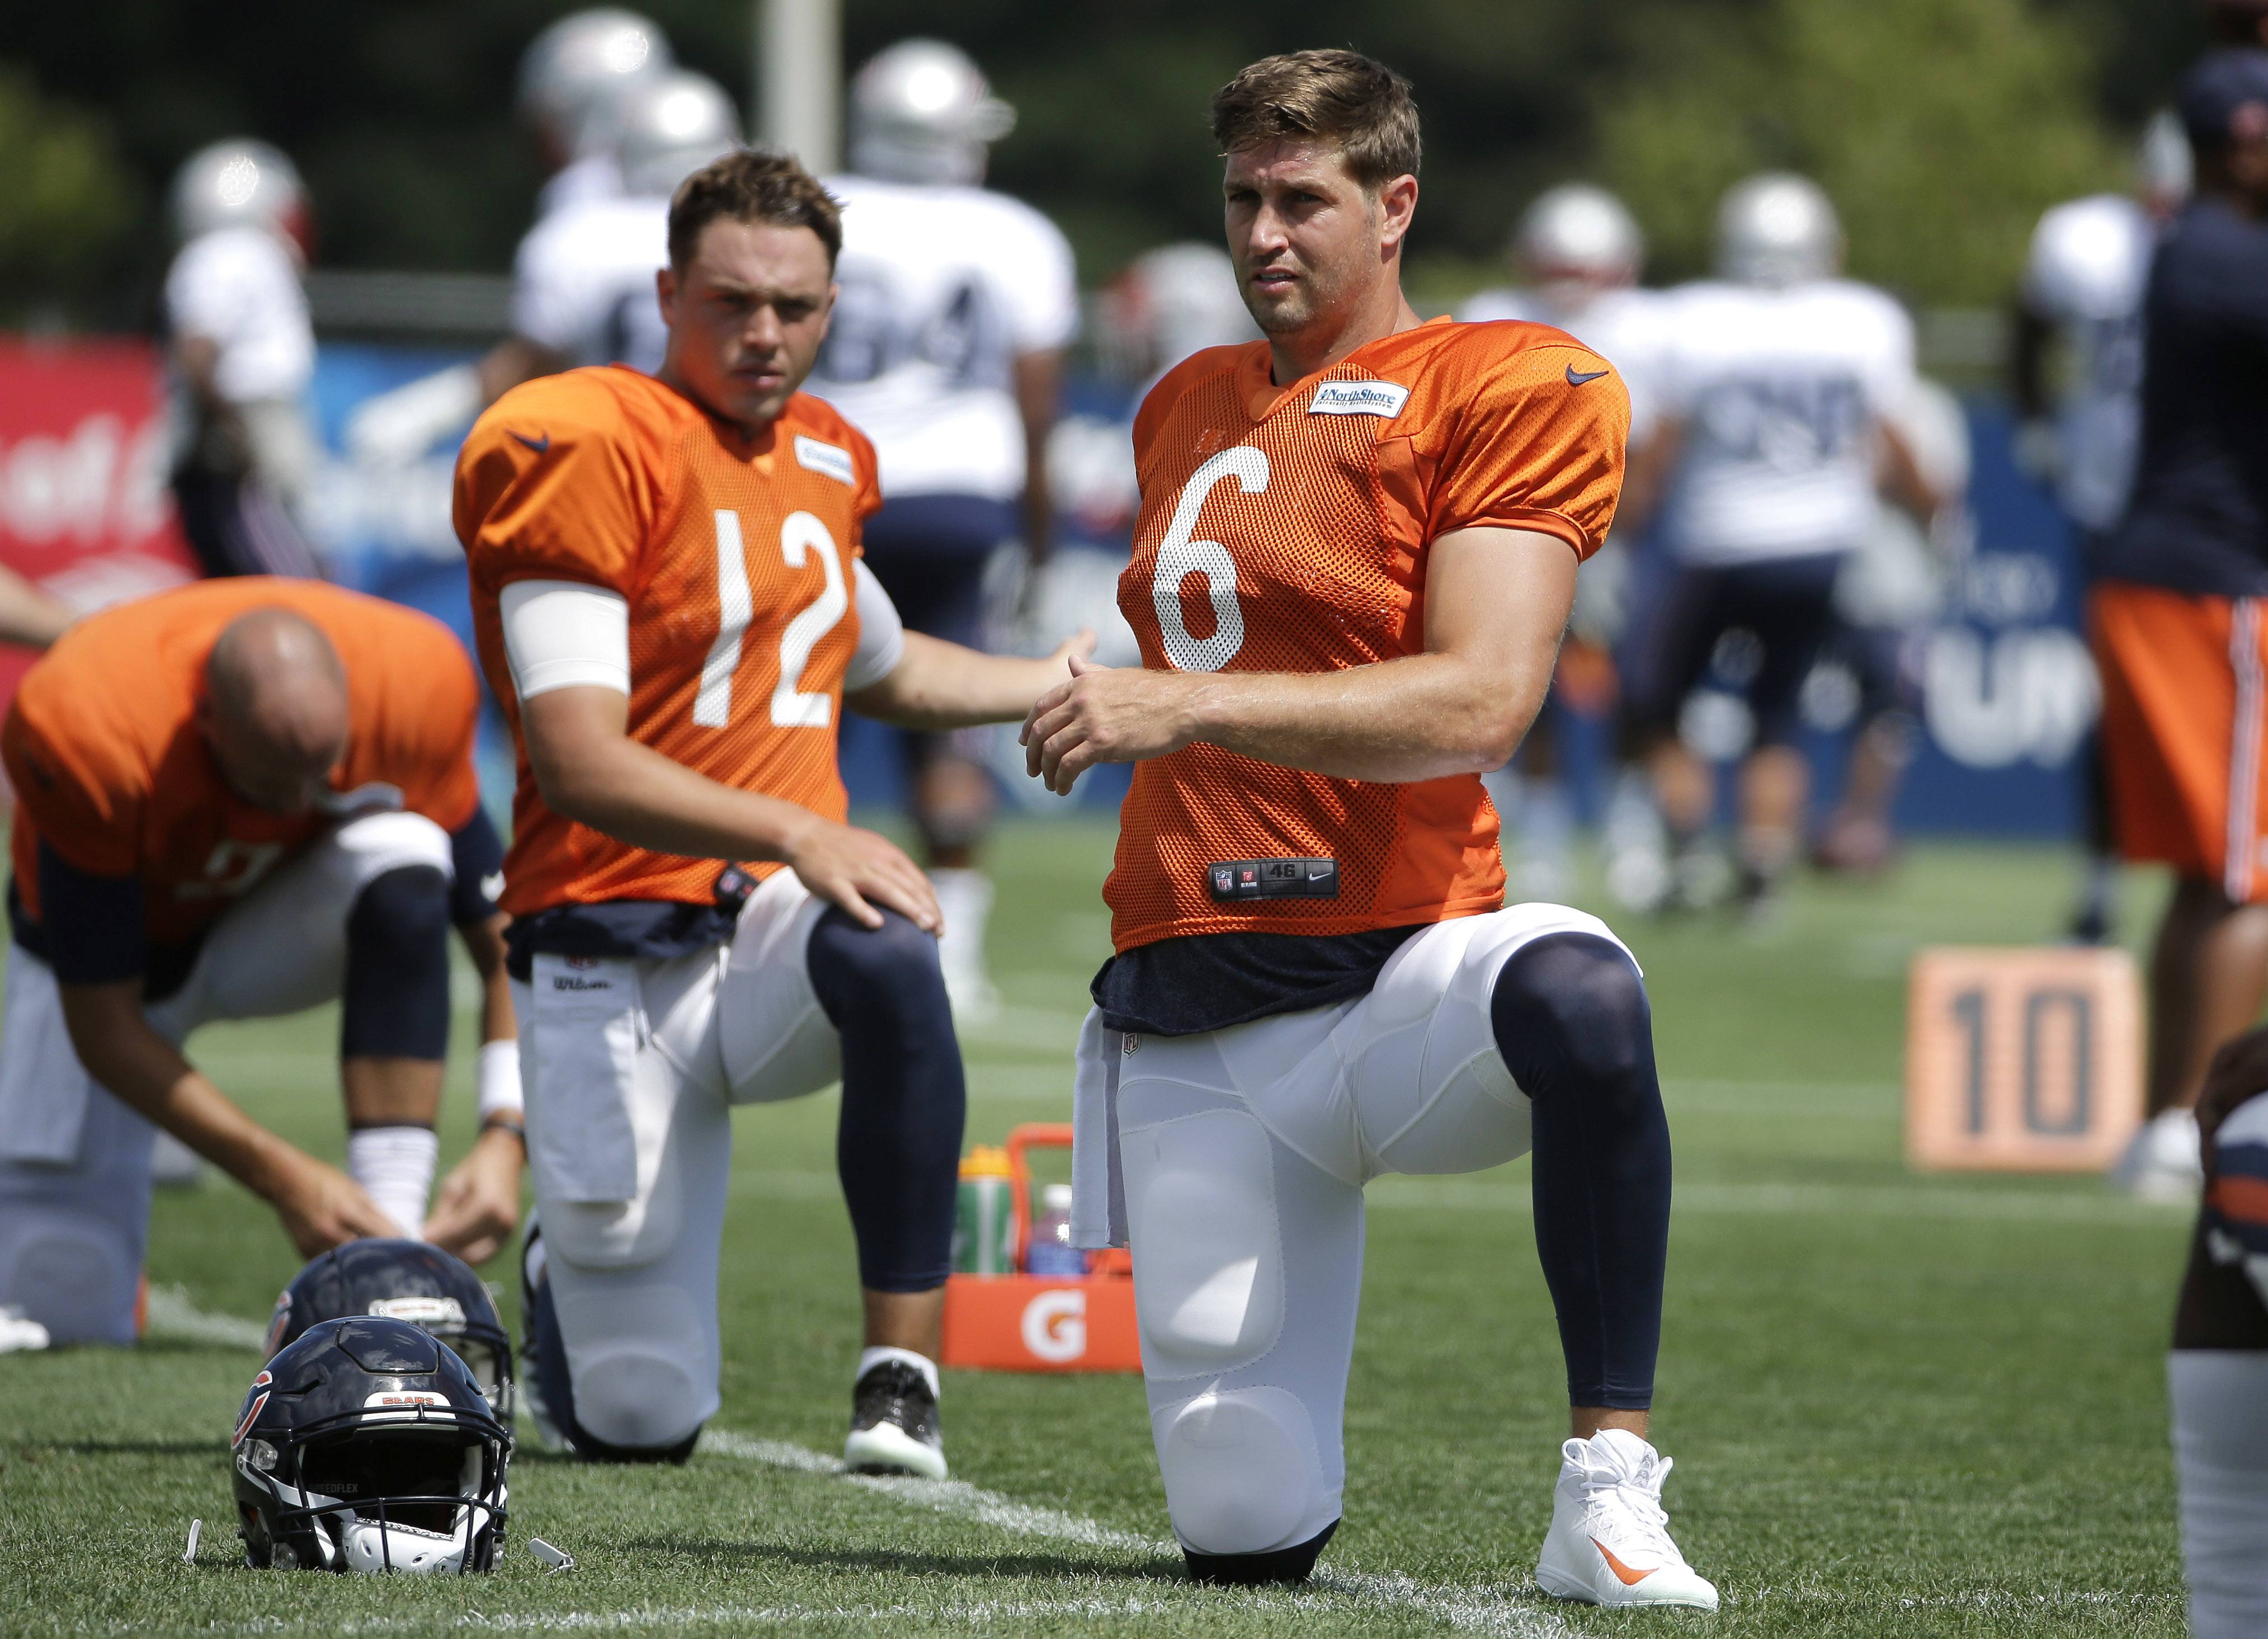 Chicago Bears quarterbacks David Fales (12) and Jay Cutler (6) warm up on the field during an NFL football training camp practice with the New England Patriots, Monday, Aug. 15, 2016, in Foxborough, Mass.